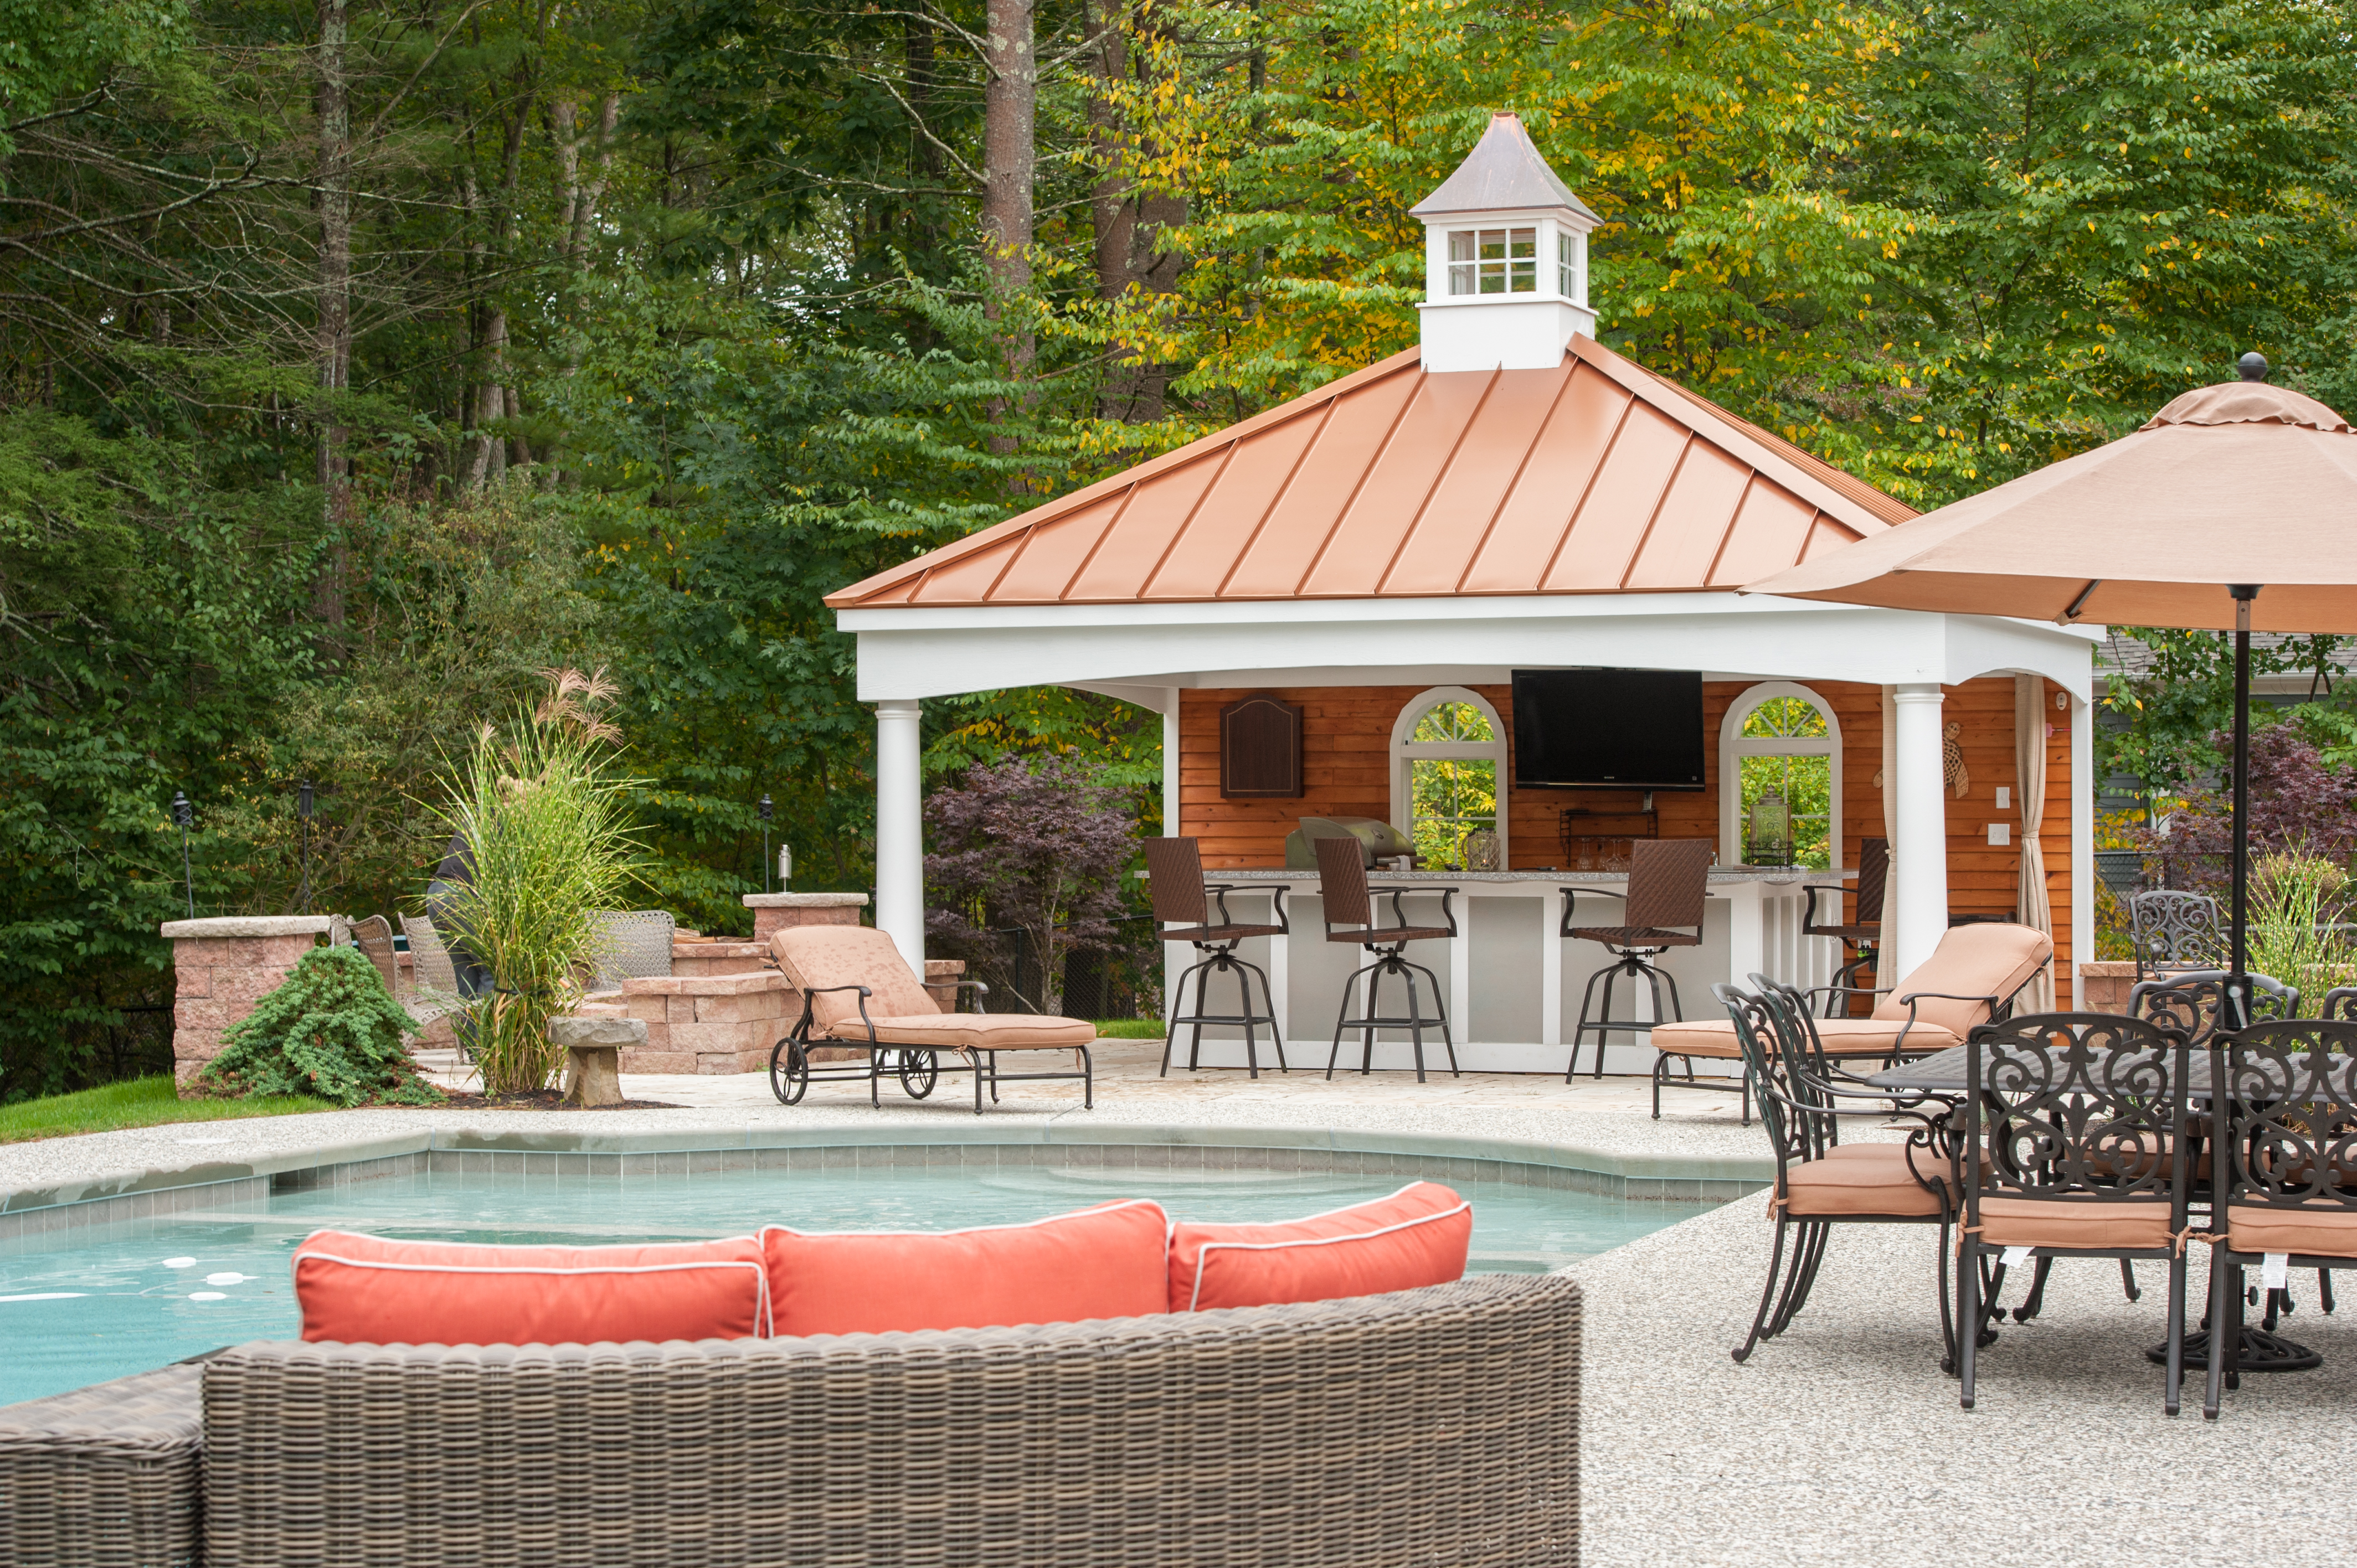 Pool houses for sale pa nj ny free quote homestead for Custom pool house